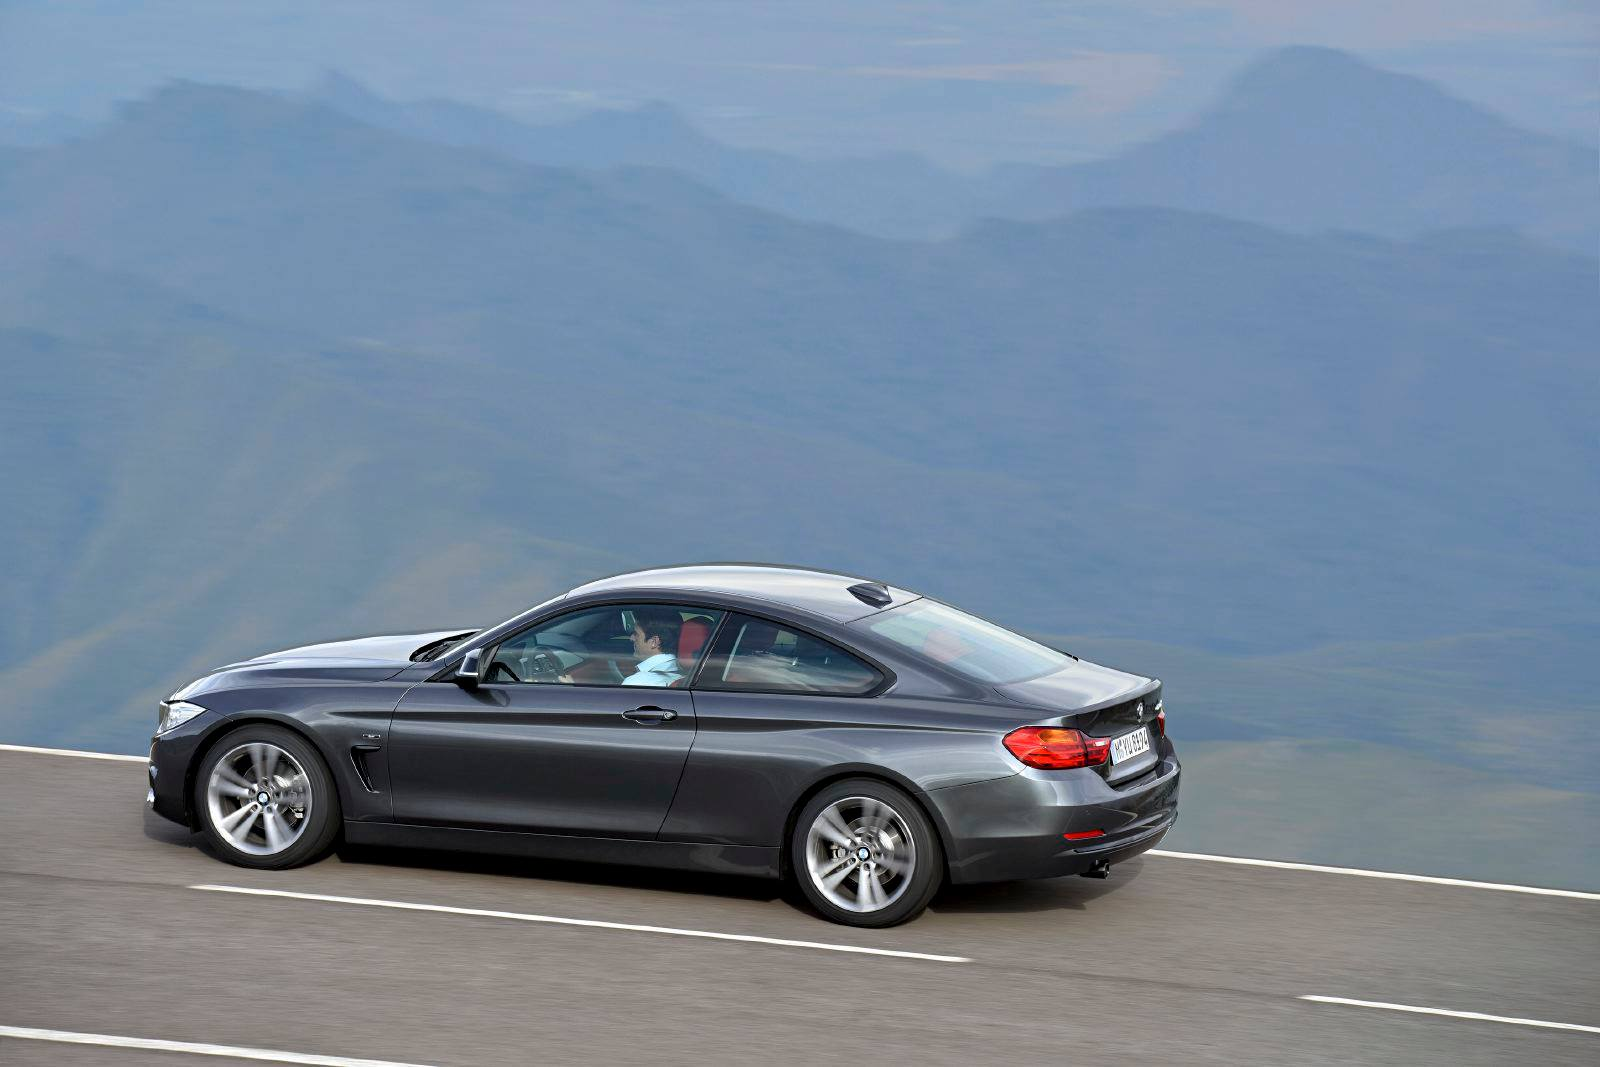 2014 bmw 4 series coupe images revealed. Black Bedroom Furniture Sets. Home Design Ideas